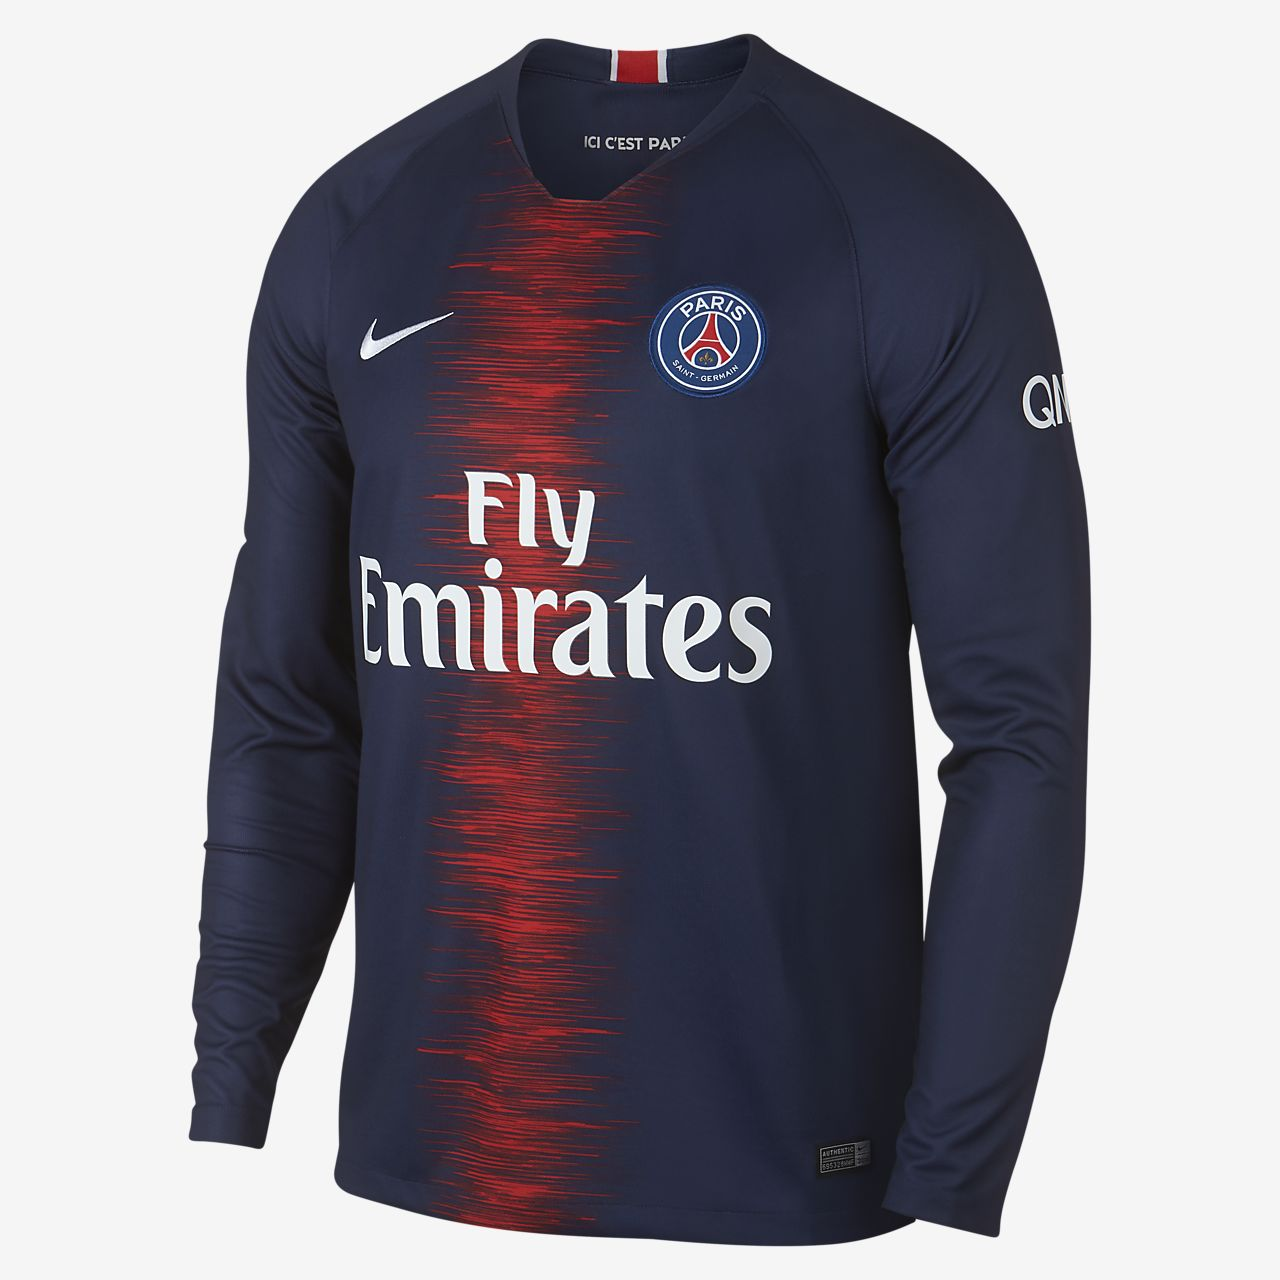 Camiseta de fútbol de manga larga para hombre de local Stadium del Paris  Saint-Germain 7f98013953b